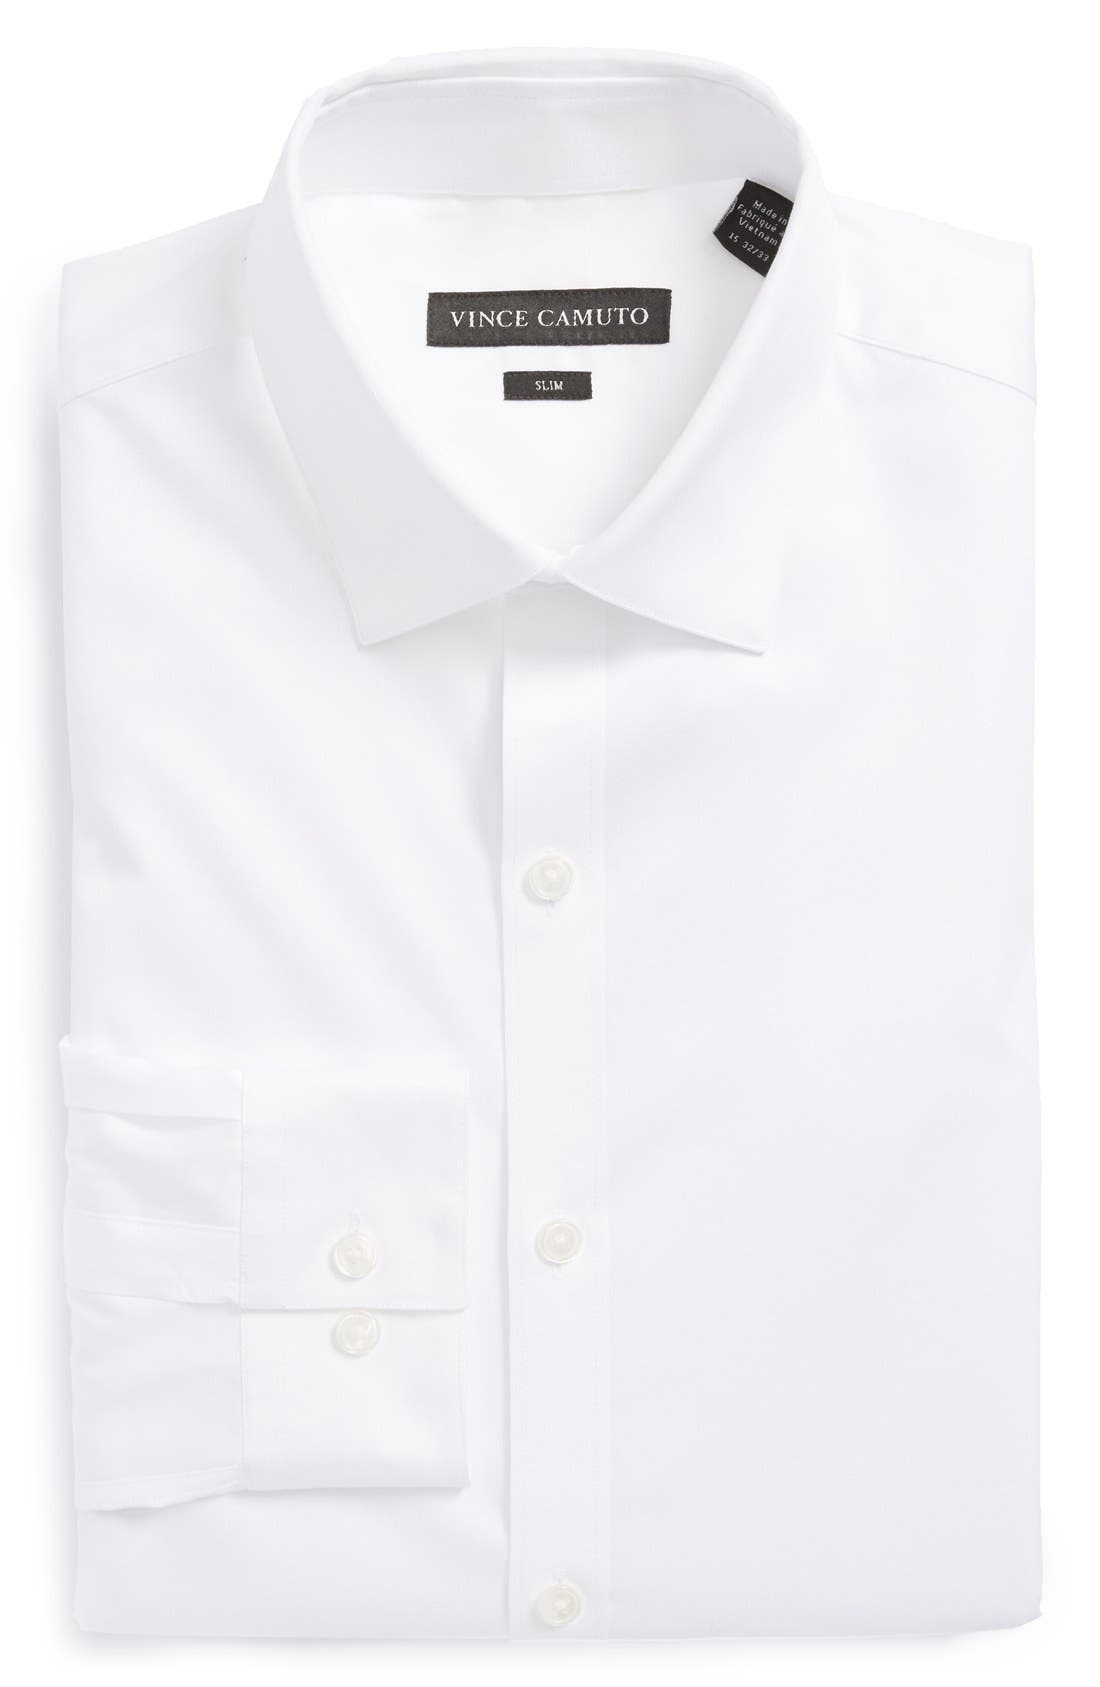 Alternate Image 1 Selected - Vince Camuto Slim Fit Solid Dress Shirt